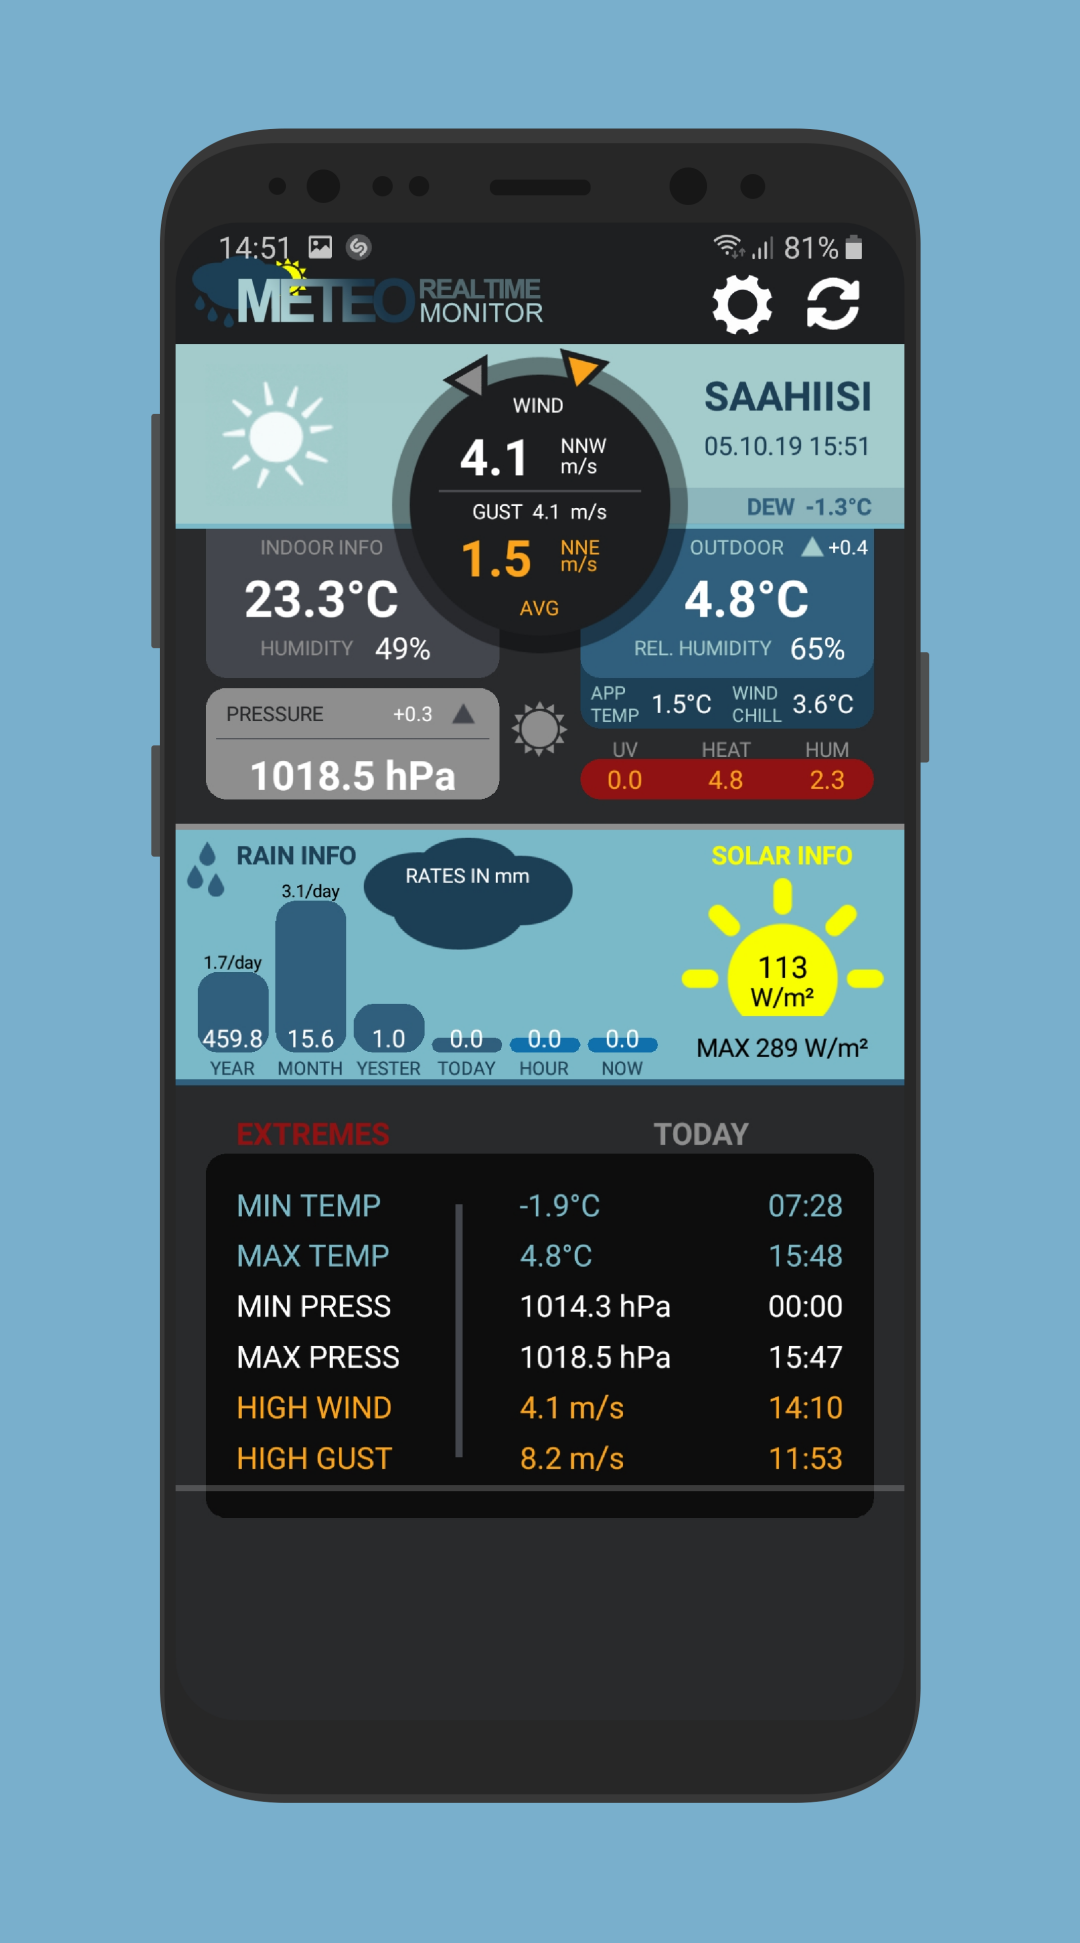 Meteo Monitor 4 Cumulus Realtime Weather